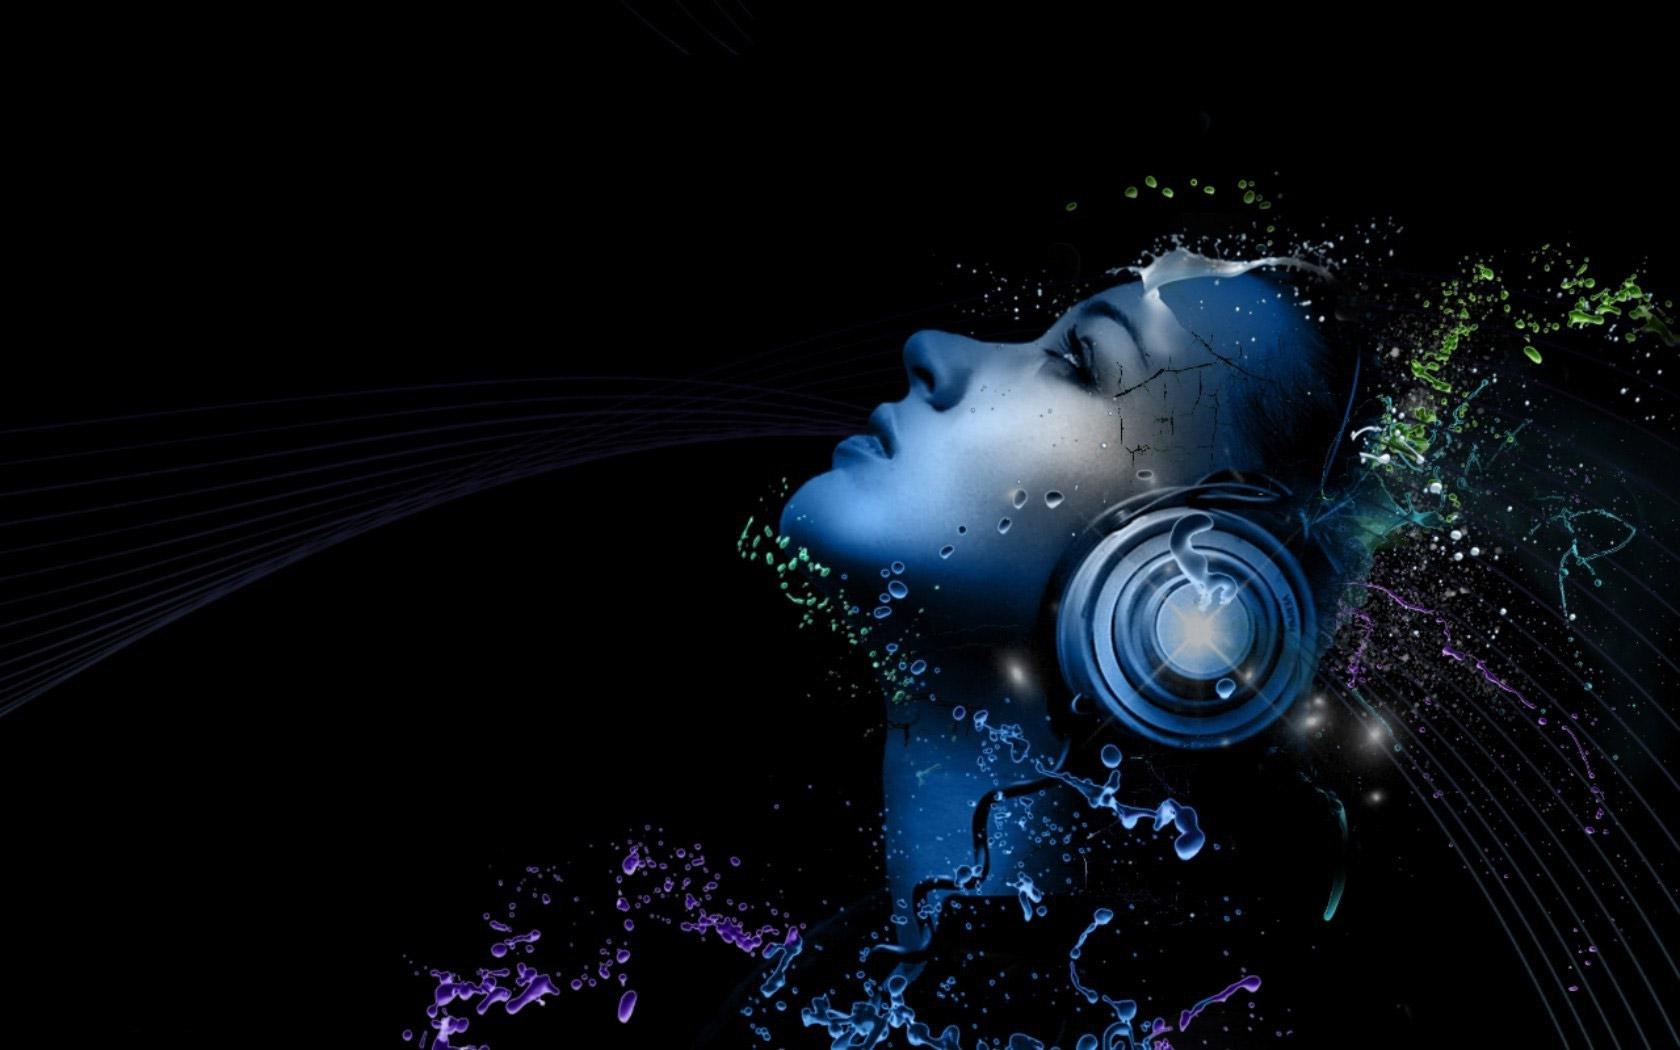 Wallpaper For Music Posted By John Tremblay